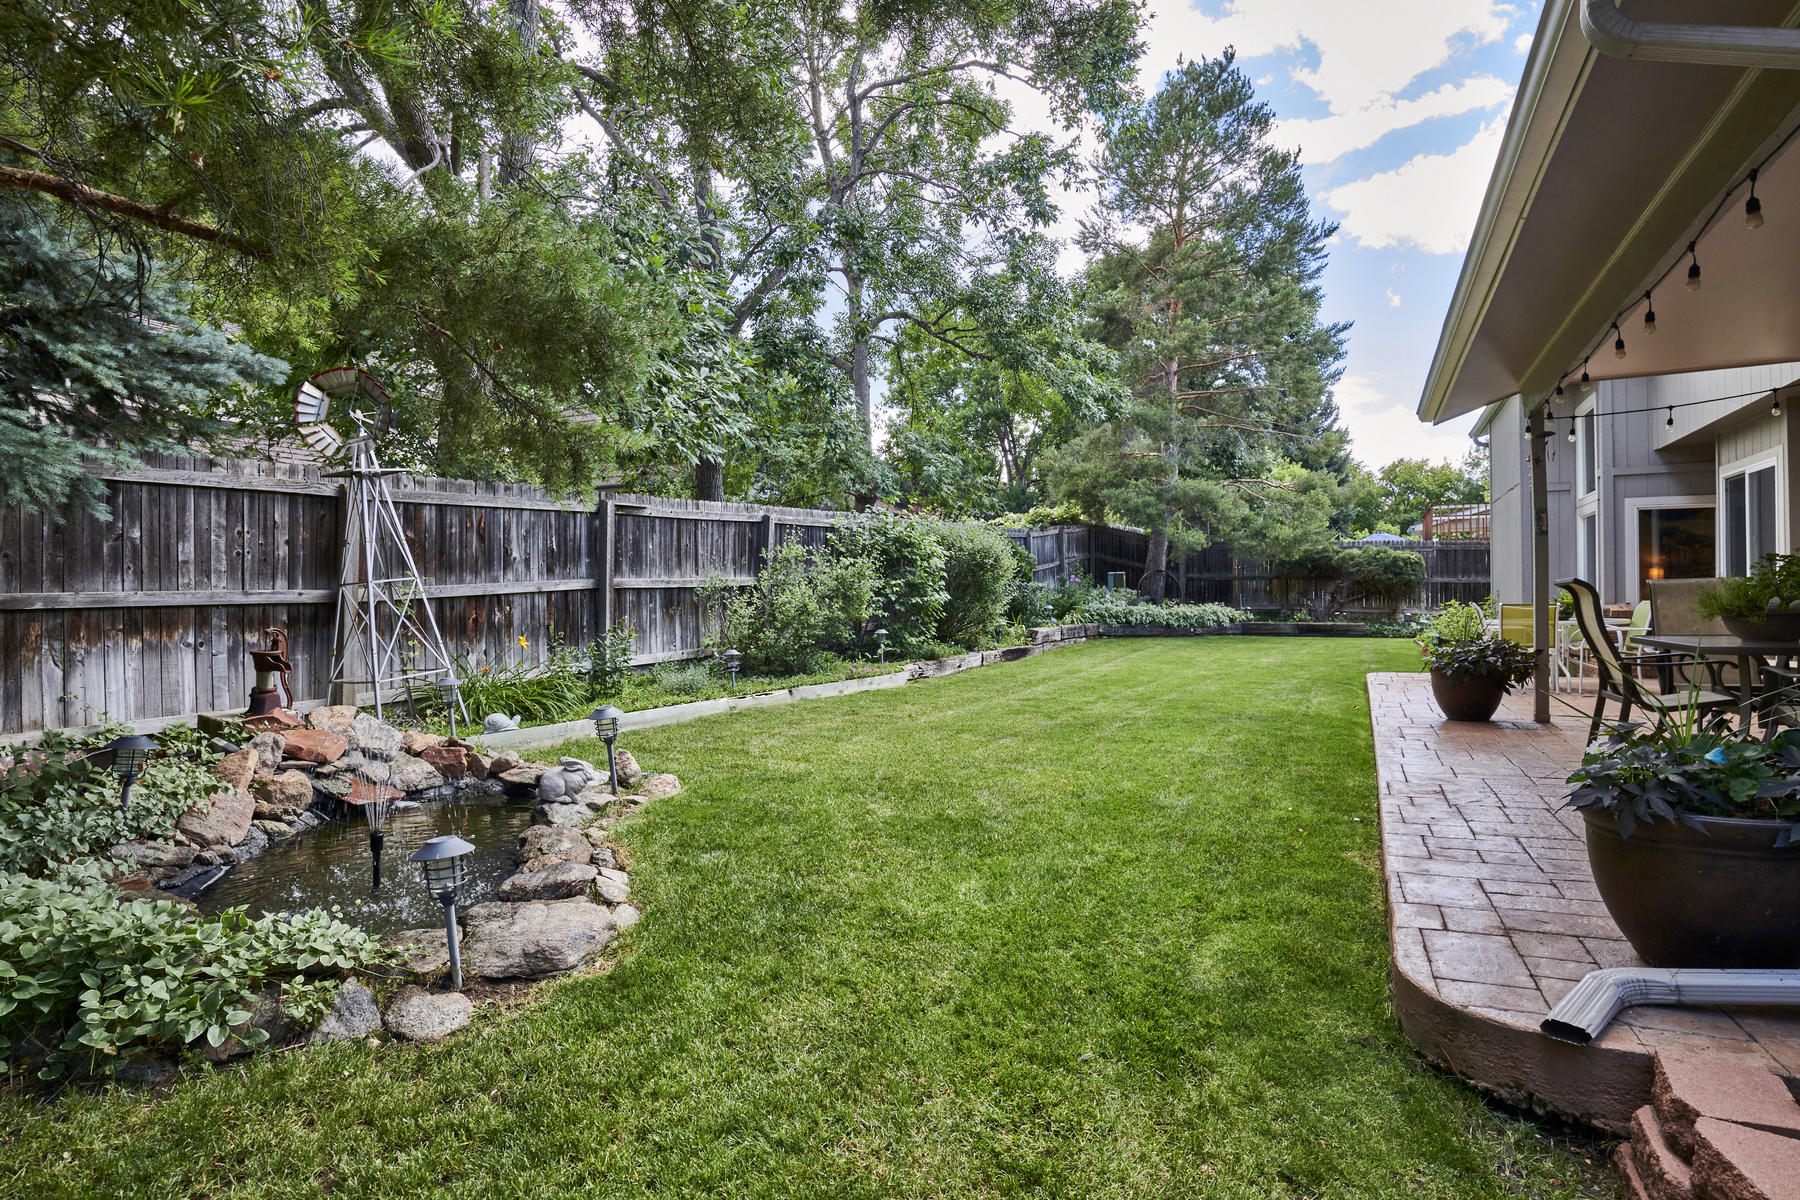 Backyard Water Feature at Left